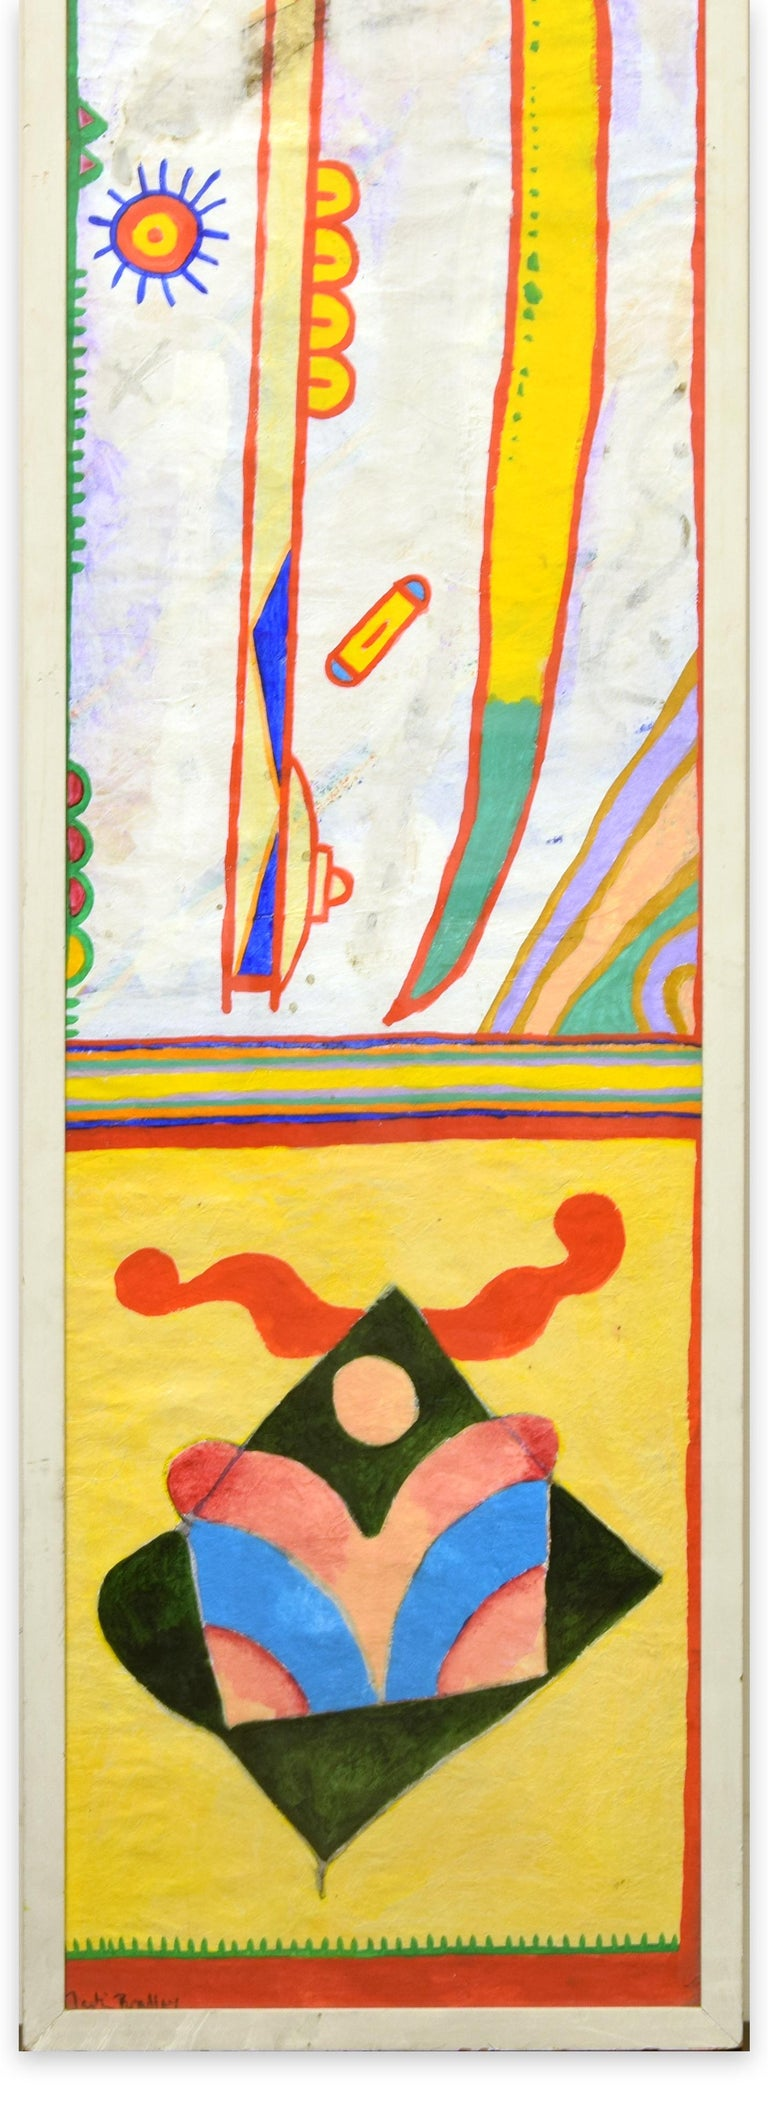 Boomerang - Acrylic Painting on Rice Paper by Martin Bradley - 1978 For Sale 1